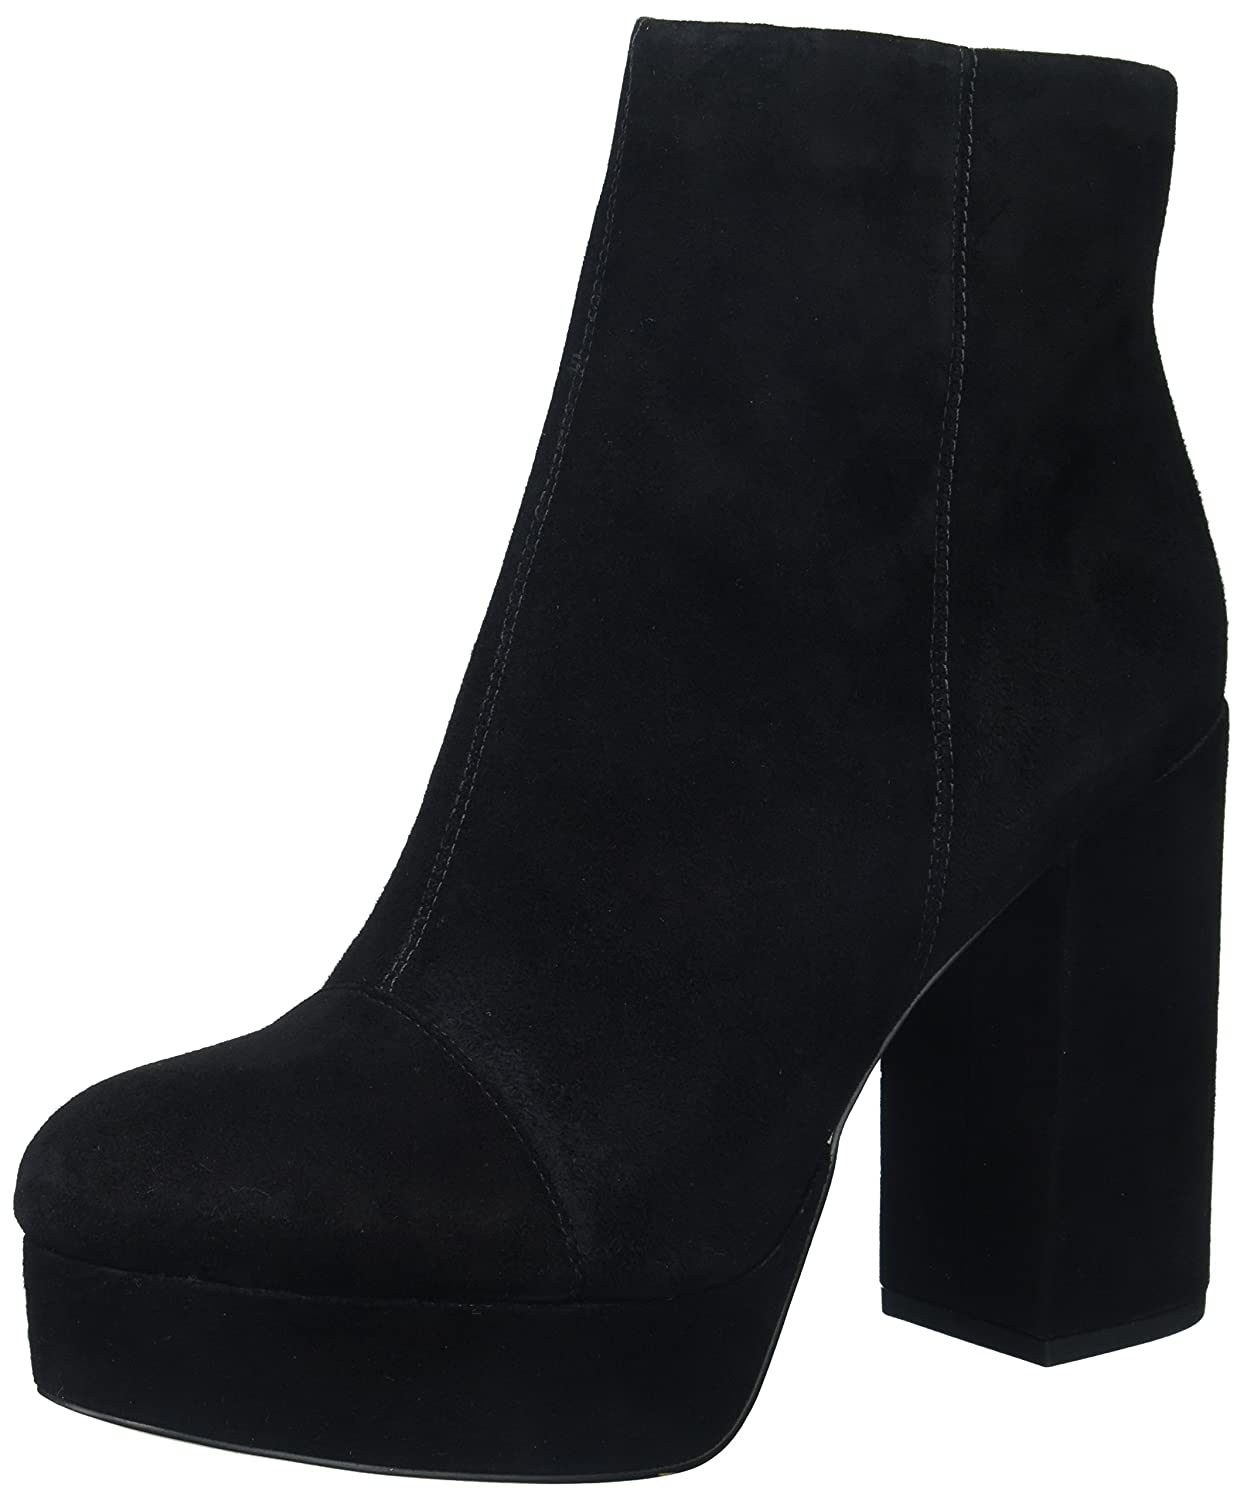 Sam Edelman Women's Azra Fashion Boot B071YFHWCN 9.5 B(M) US|Black Suede